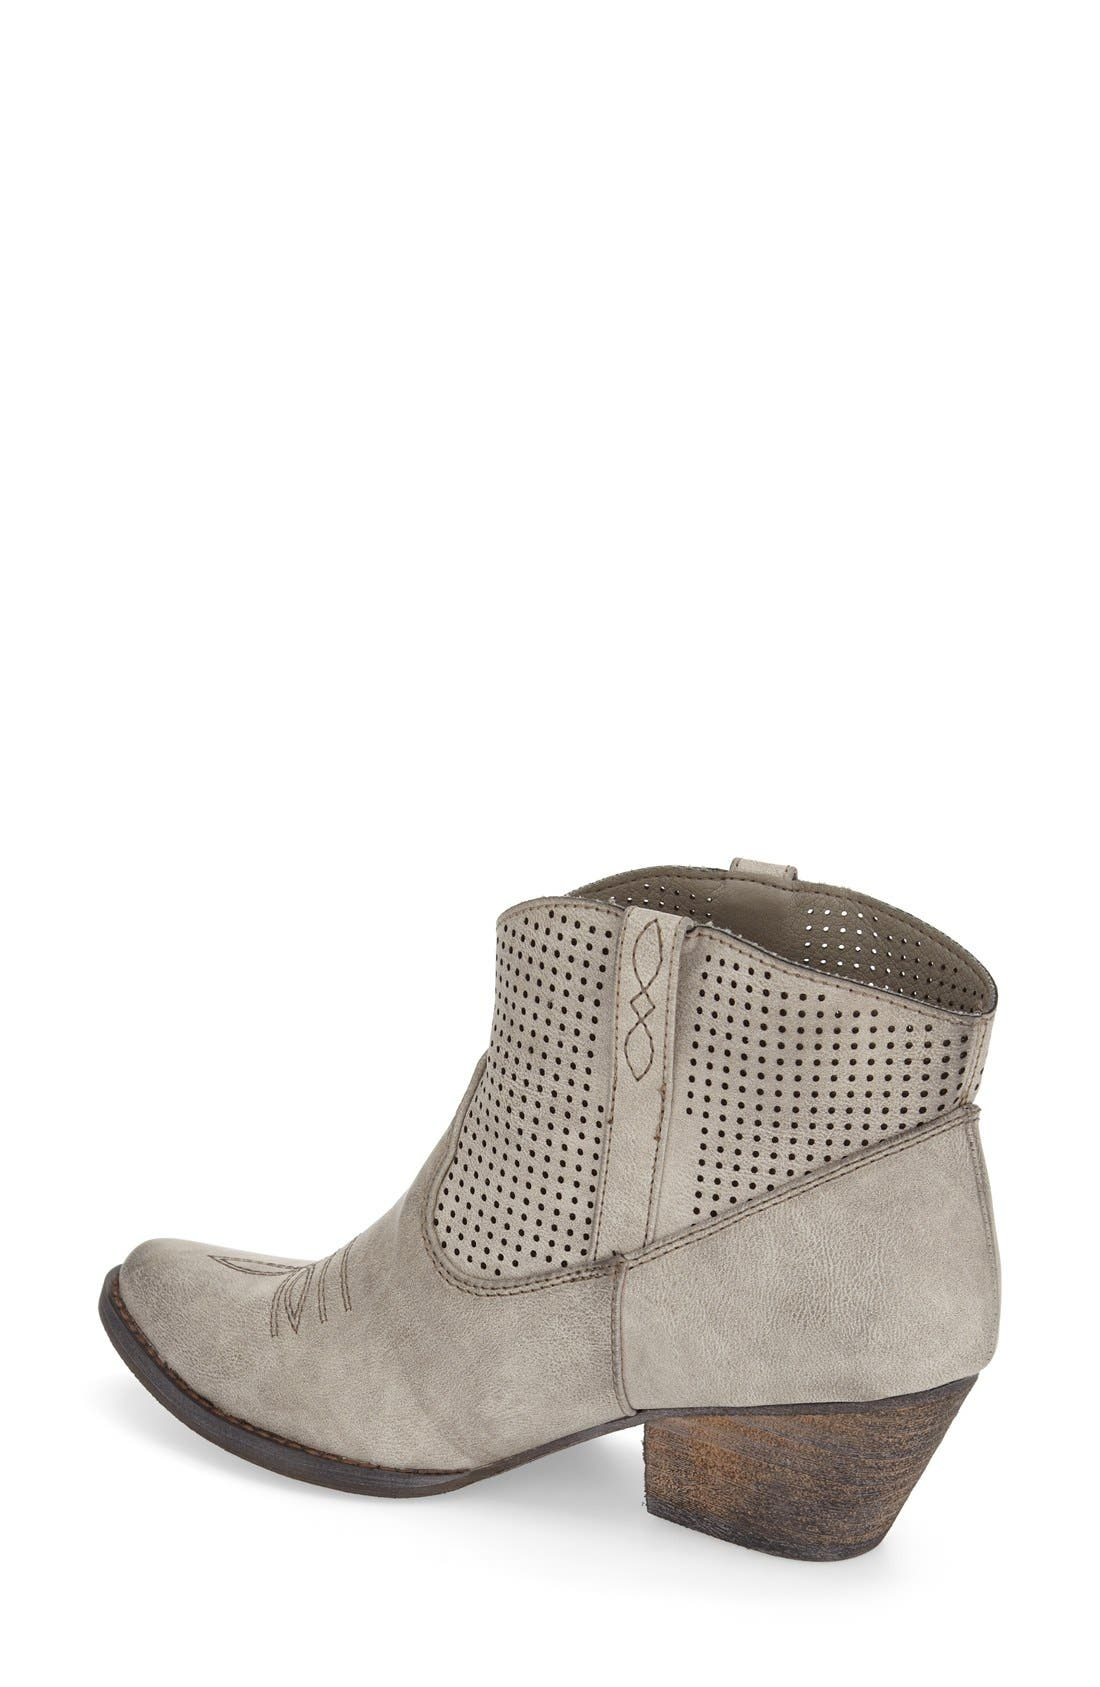 Alternate Image 2  - Very Volatile 'Mishka' Perforated Western Bootie (Women)